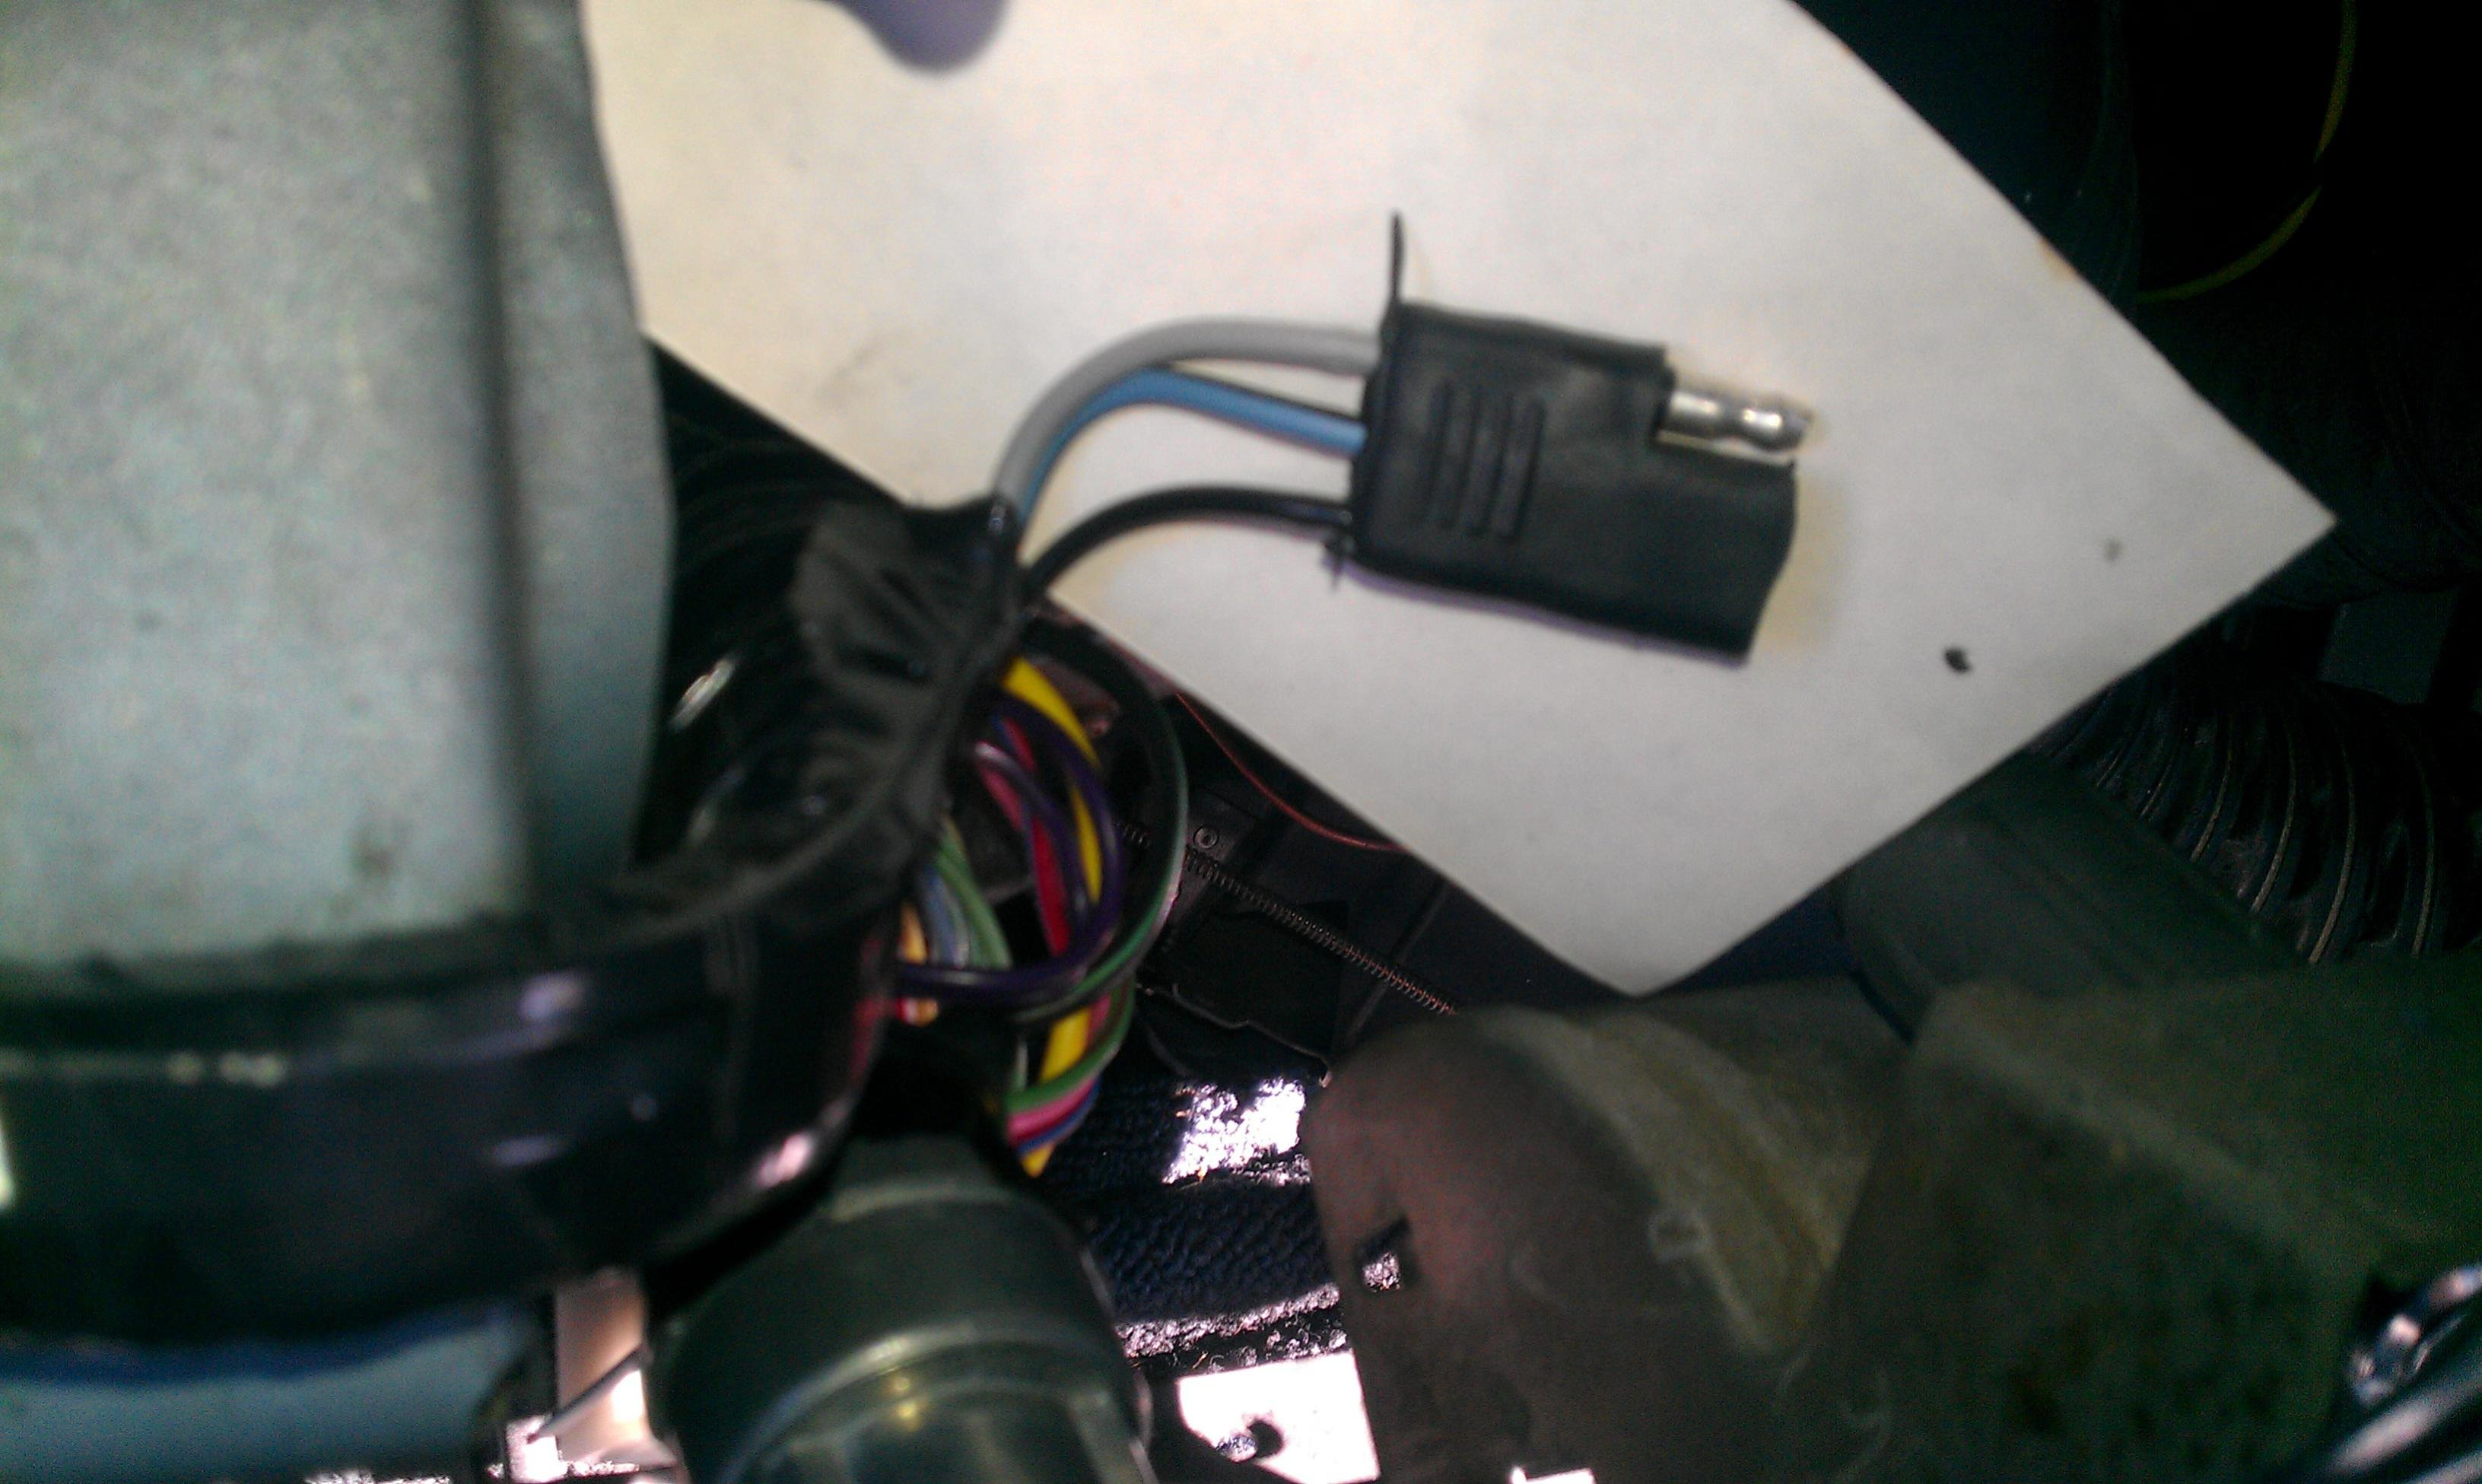 Need assistance in identifying under dash wire harness wires ...